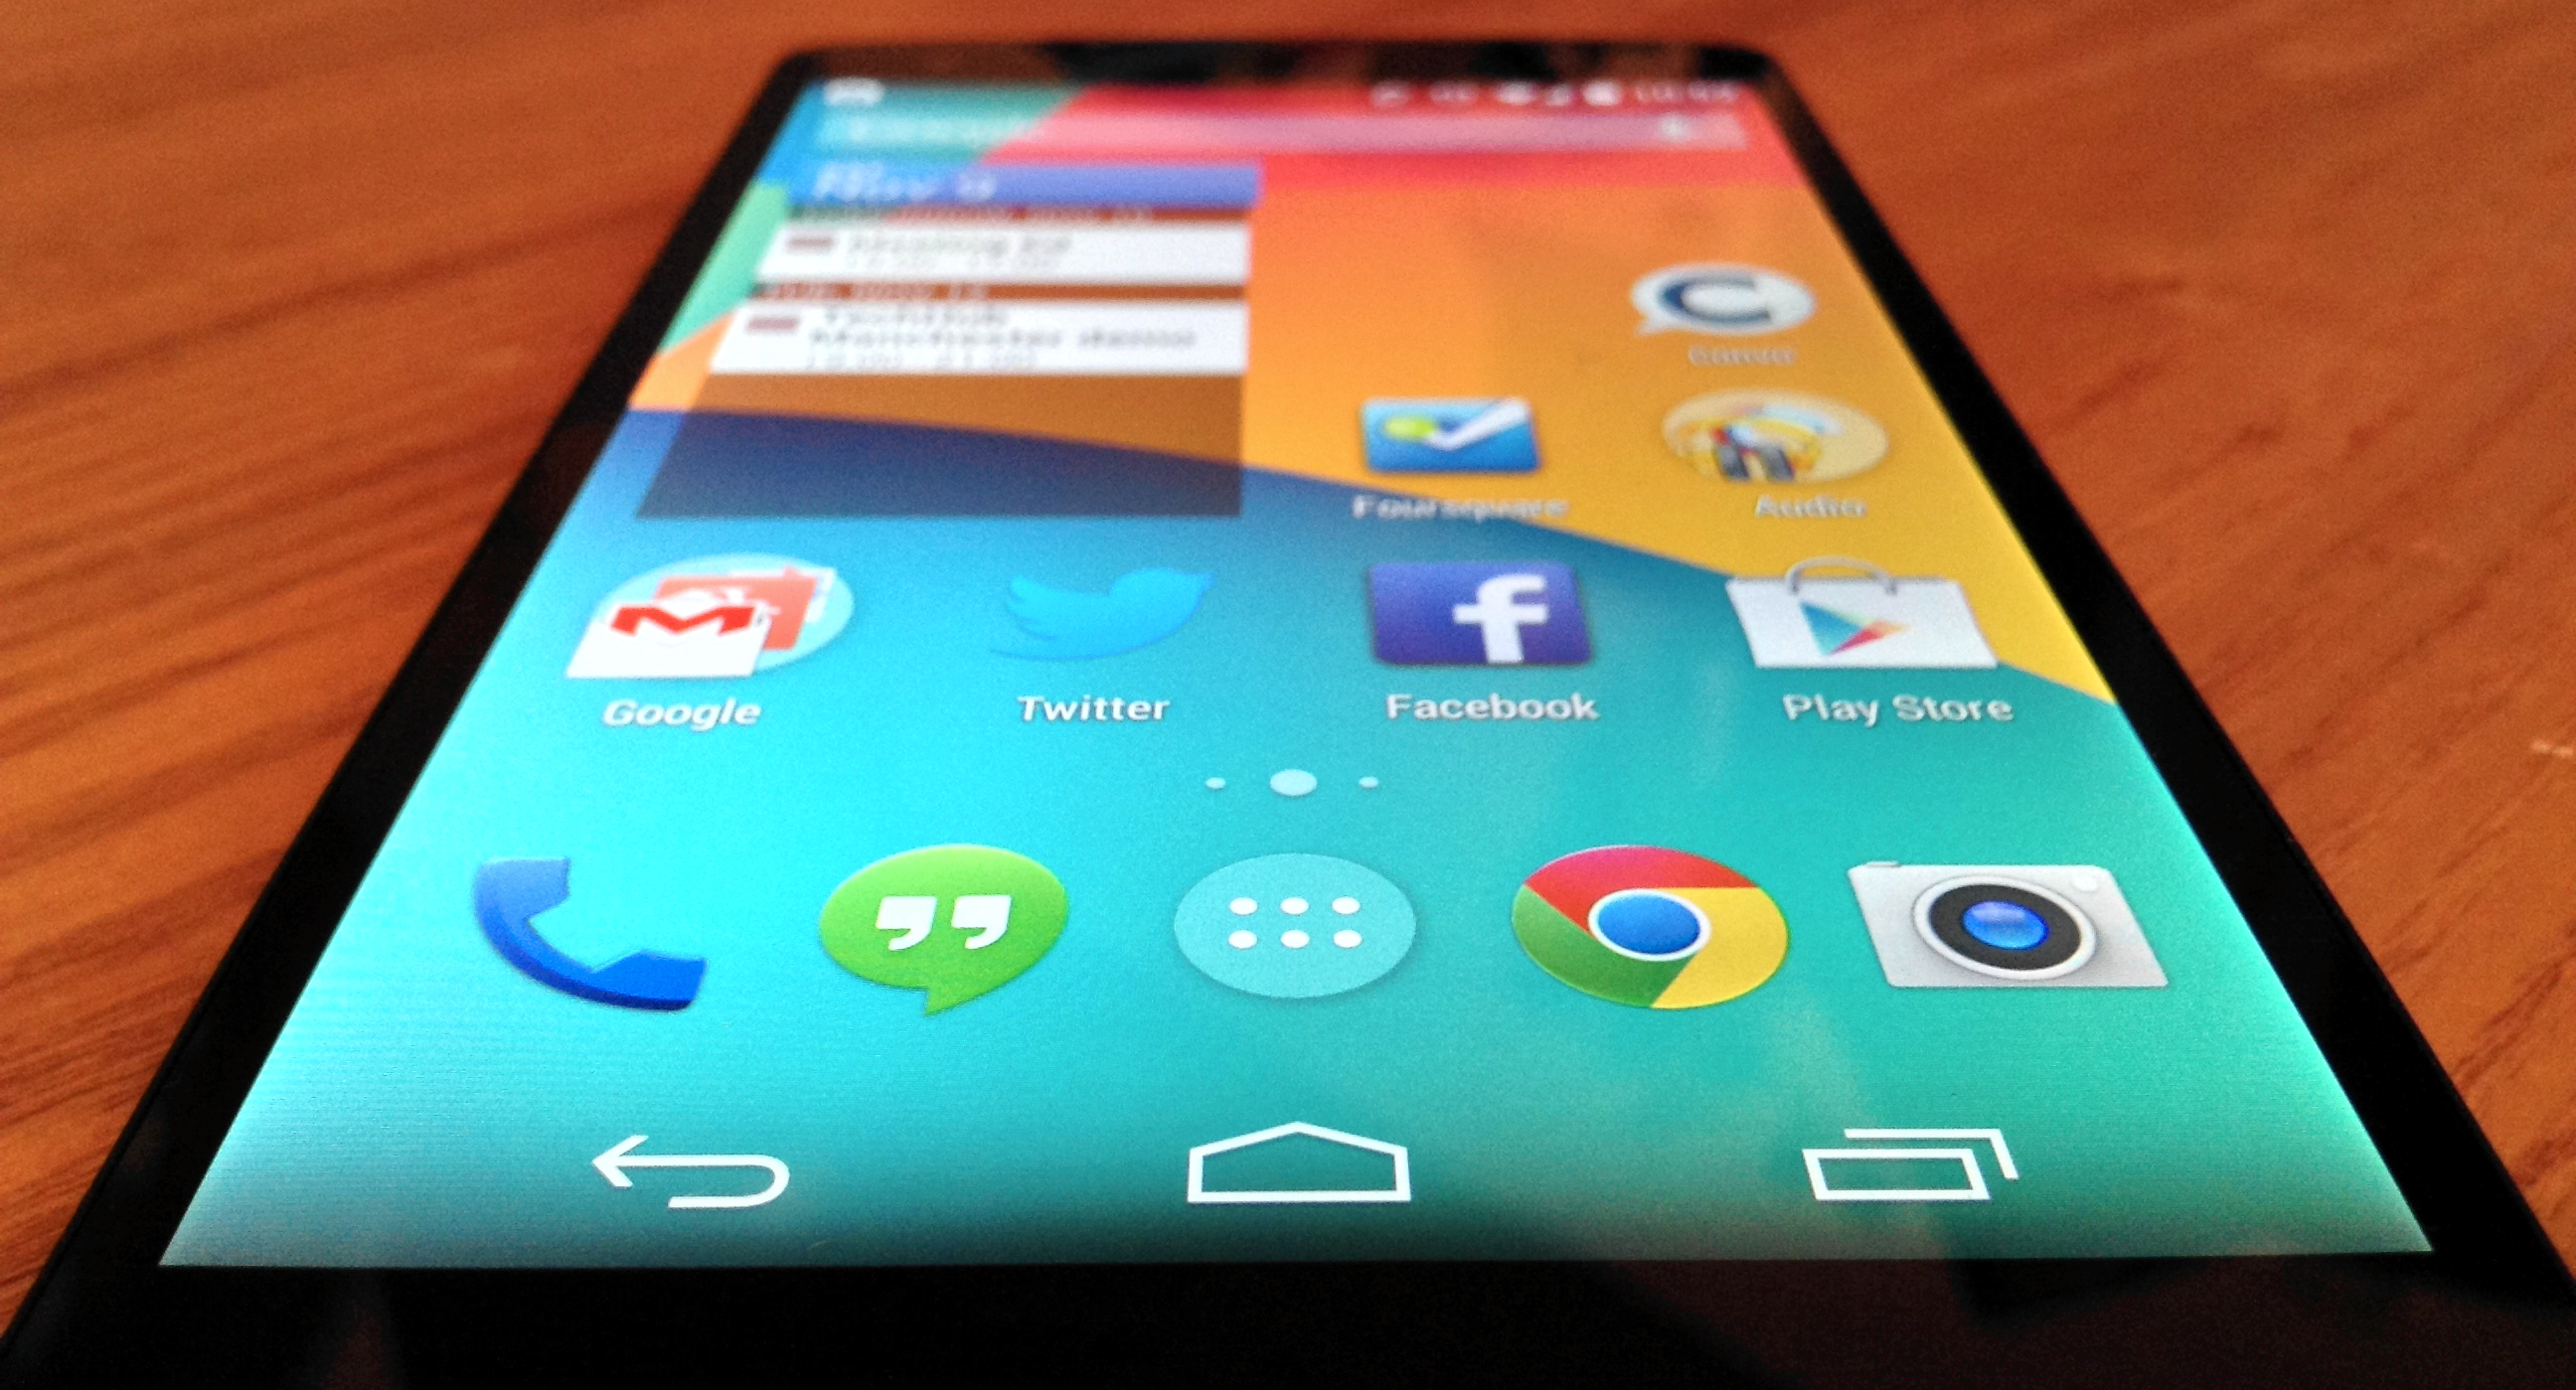 Phone Is Nexus 5 An Android Phone google nexus 5 review android hardware and software in harmony yes stock is